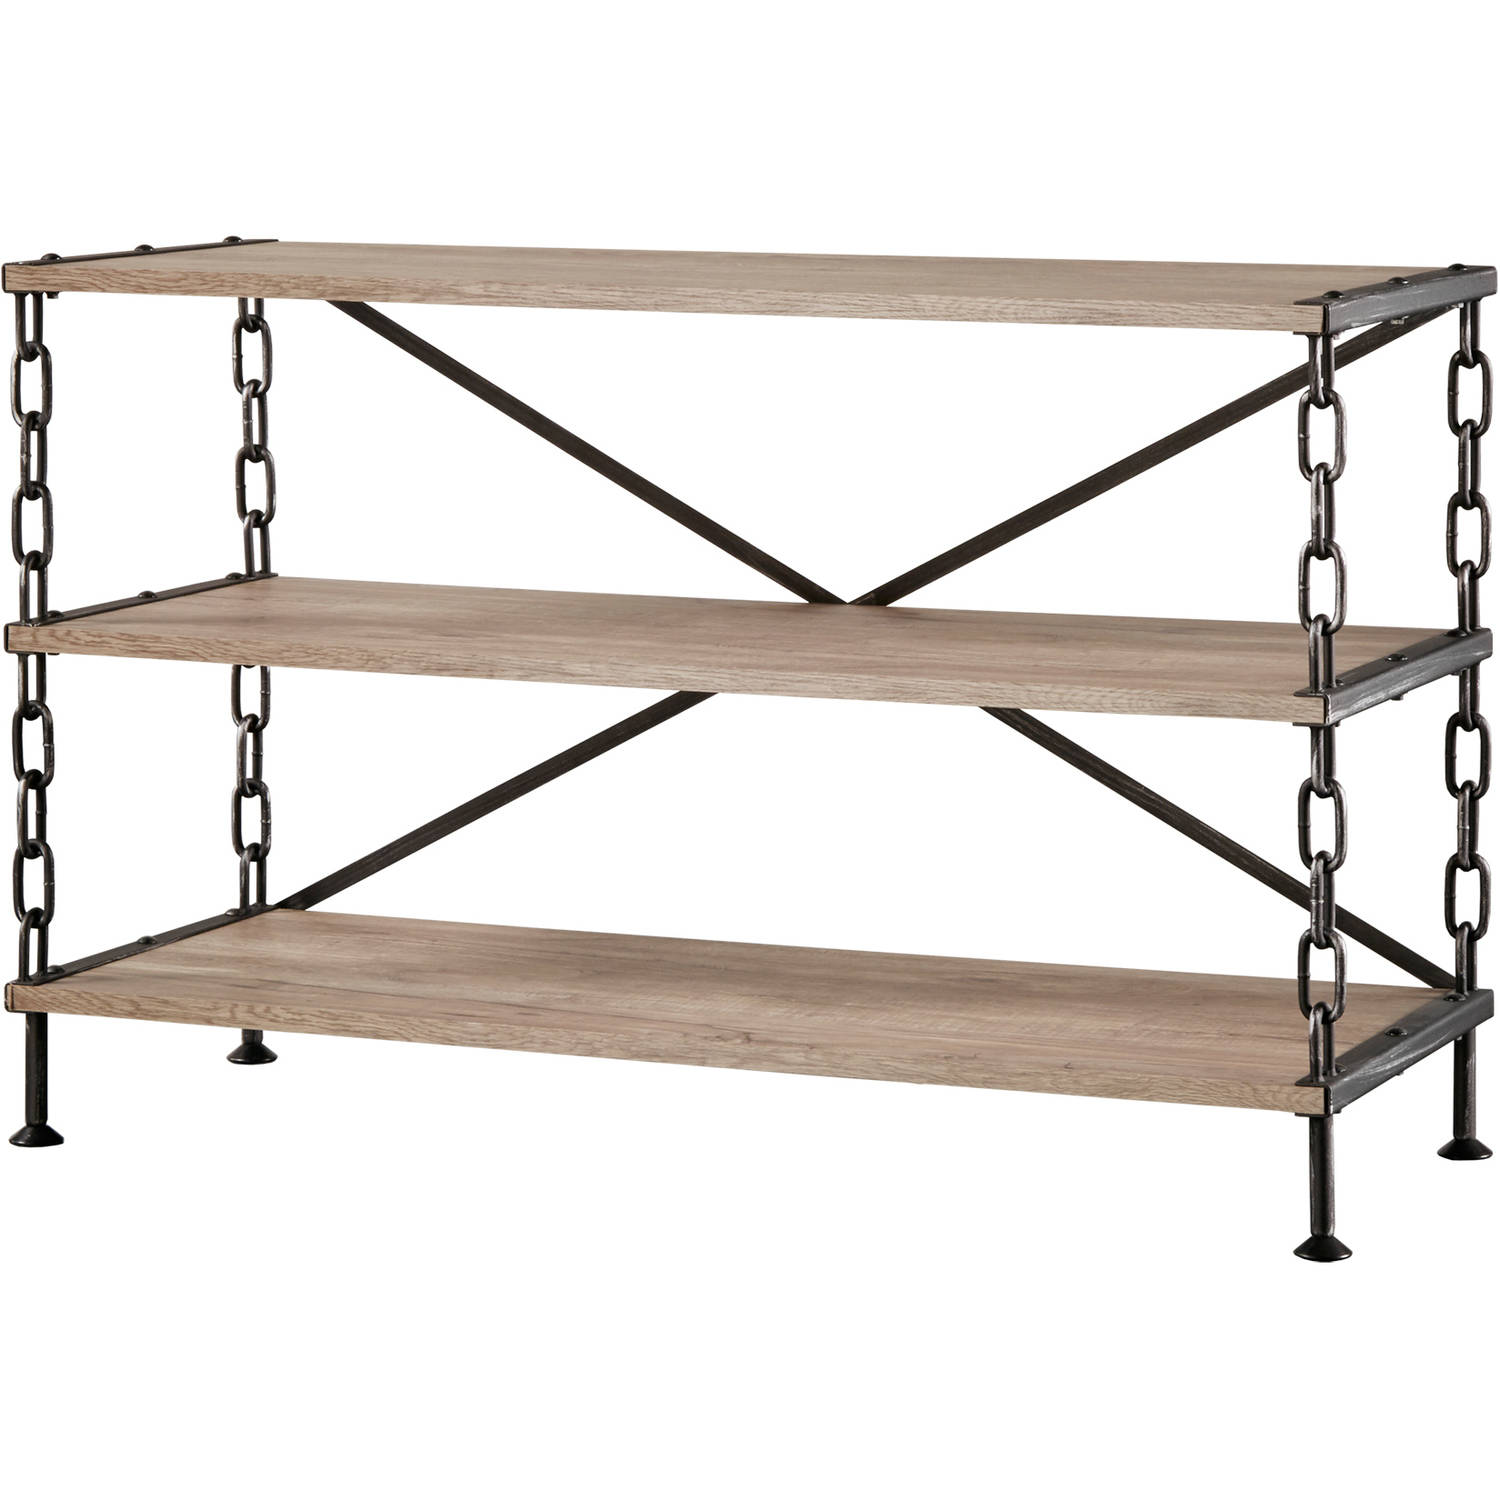 Chelsea Lane Modern Industrial Chain Link Support Sofa Table TV Stand, Brown & Black